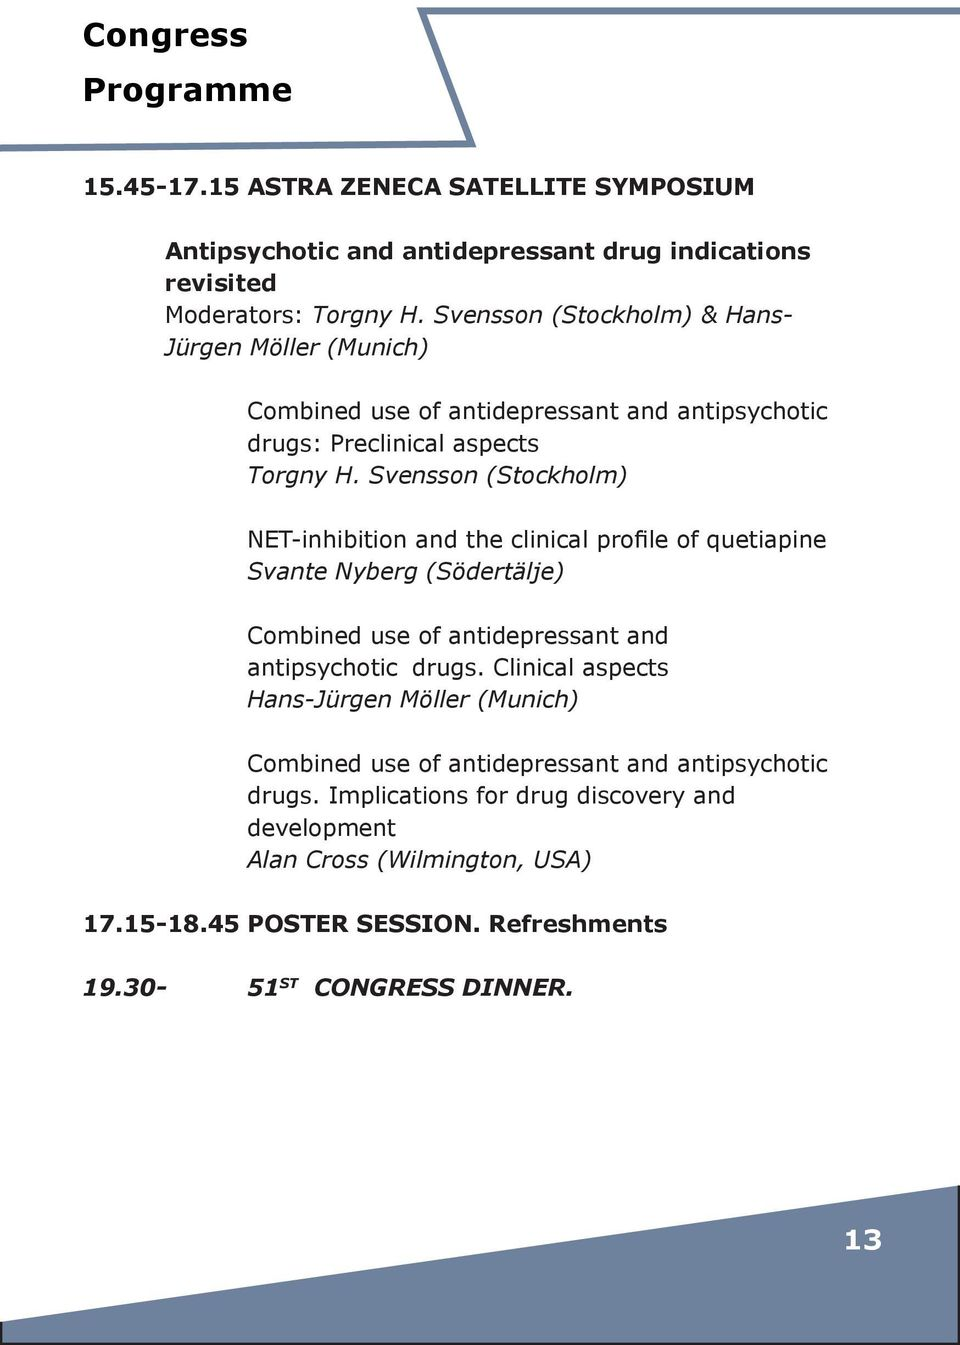 Svensson (Stockholm) NET-inhibition and the clinical profile of quetiapine Svante Nyberg (Södertälje) Combined use of antidepressant and antipsychotic drugs.